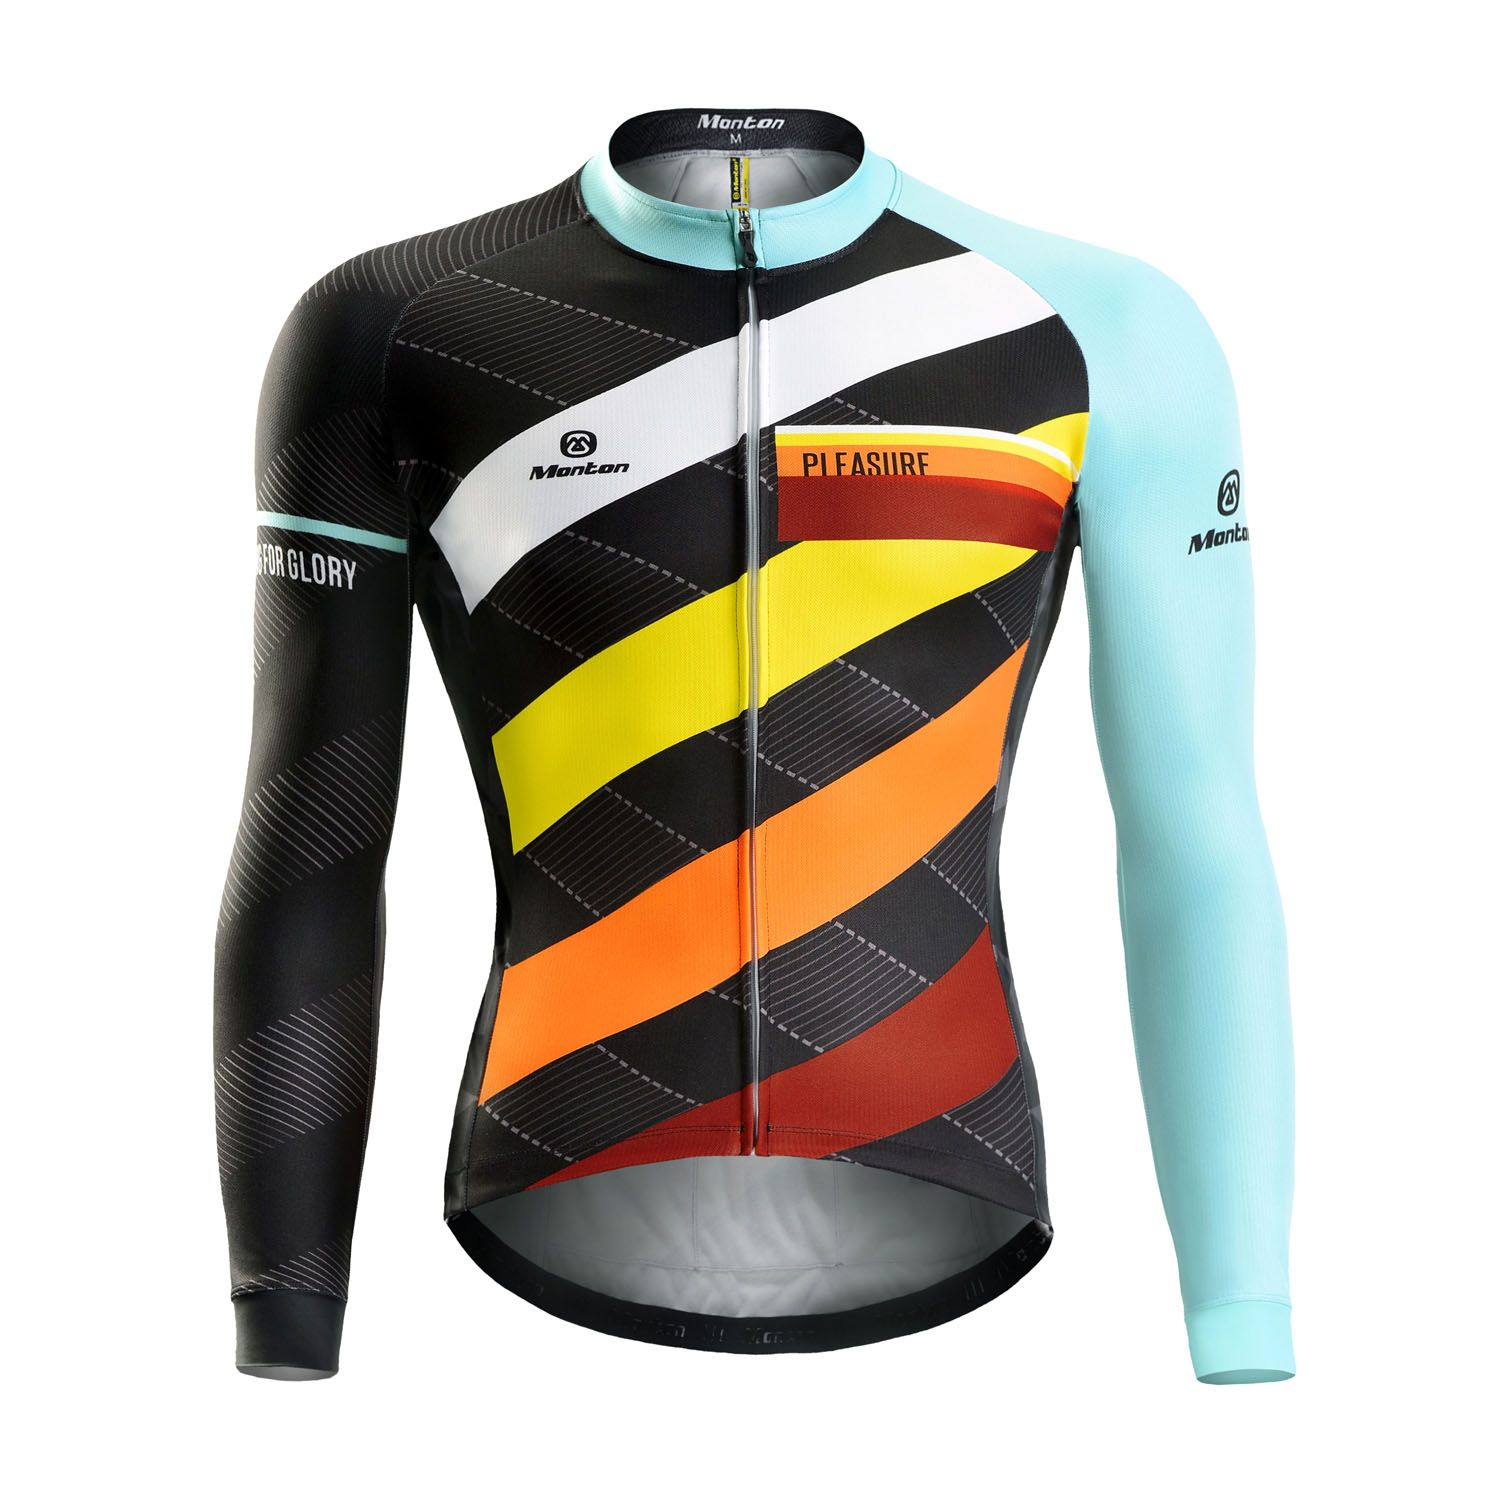 Dimension Men S Long Sleeve Cycle Jersey Cycling Outfit Cycling Jersey Design Cycling Jersey